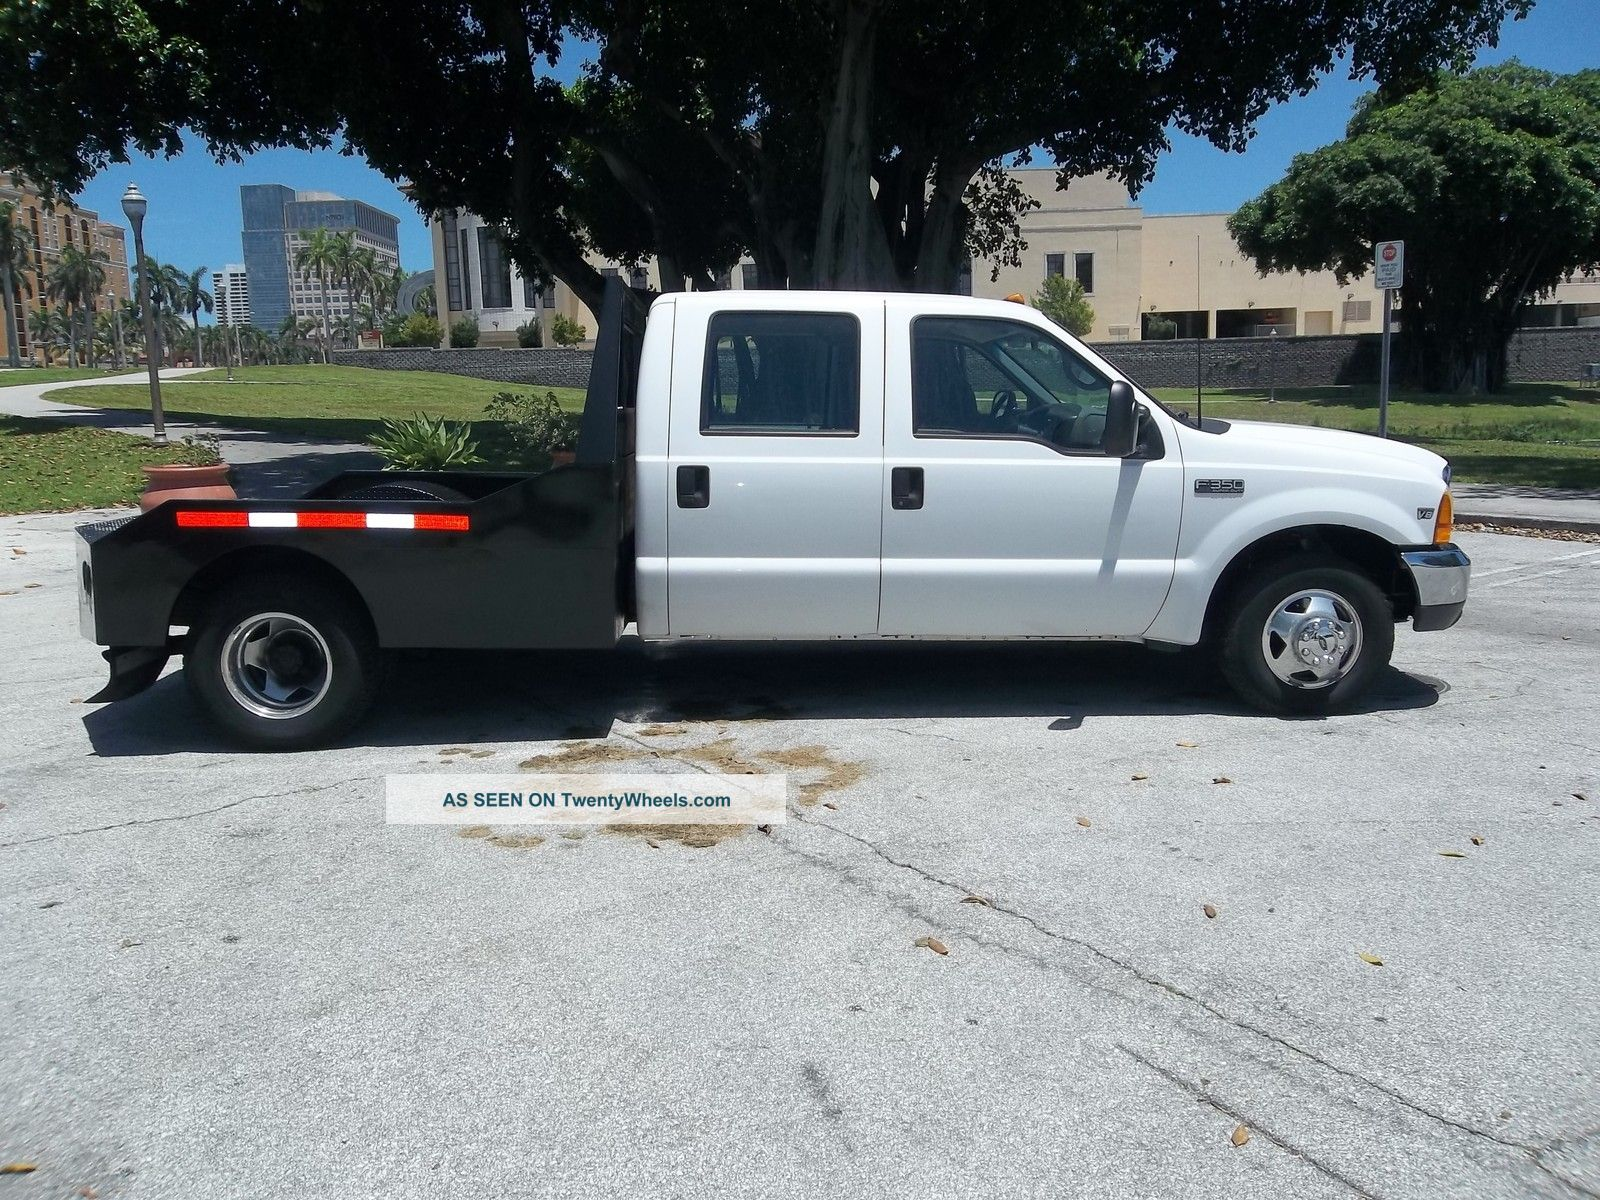 Towing Capacity 2013 F350 Diesel | Autos Post